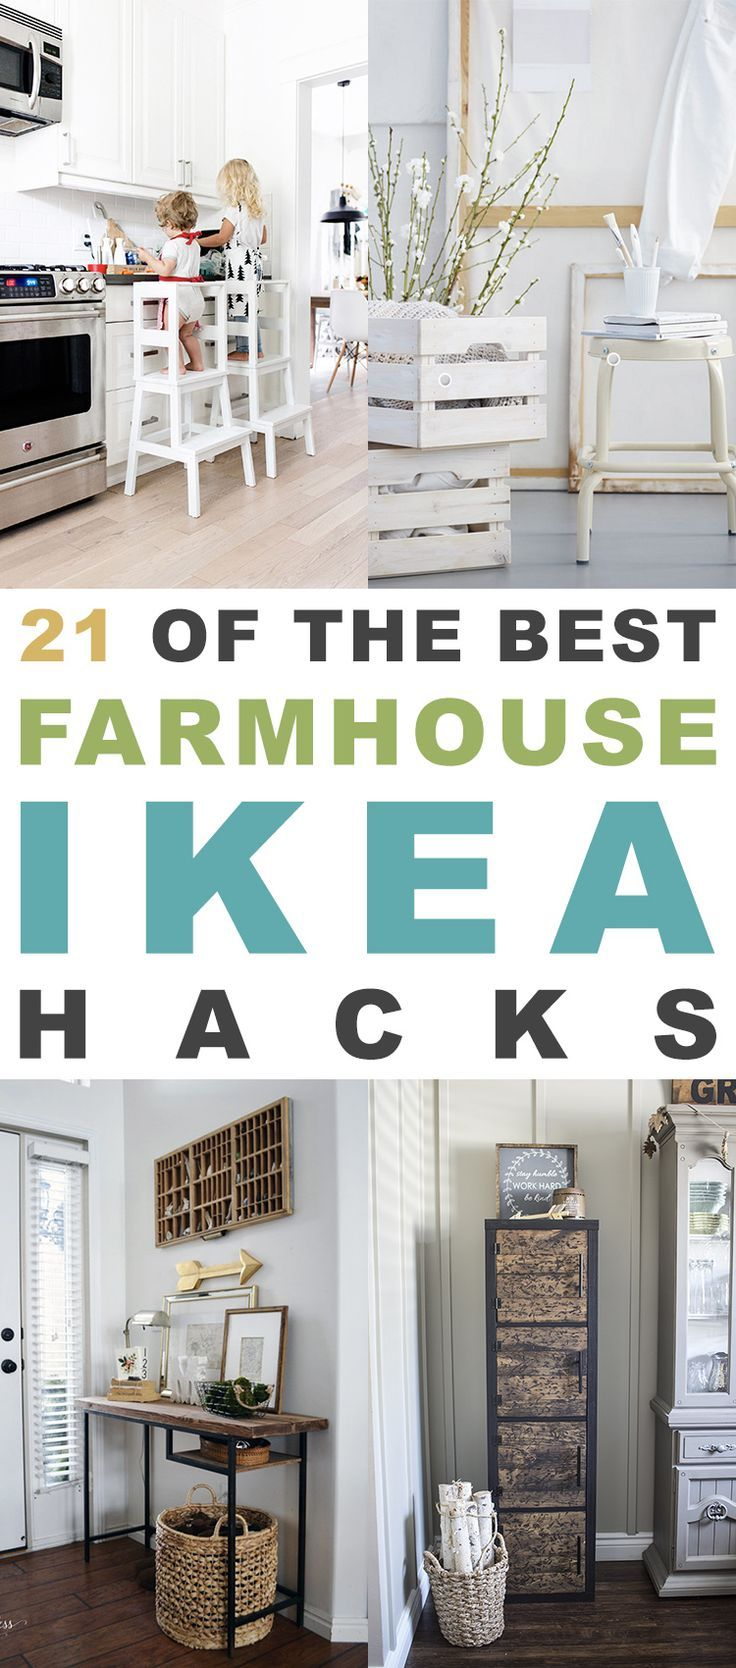 Ikea Hacks Schlafzimmer 21 Of The Best Farmhouse Ikea Hacks Home And Living Pinterest